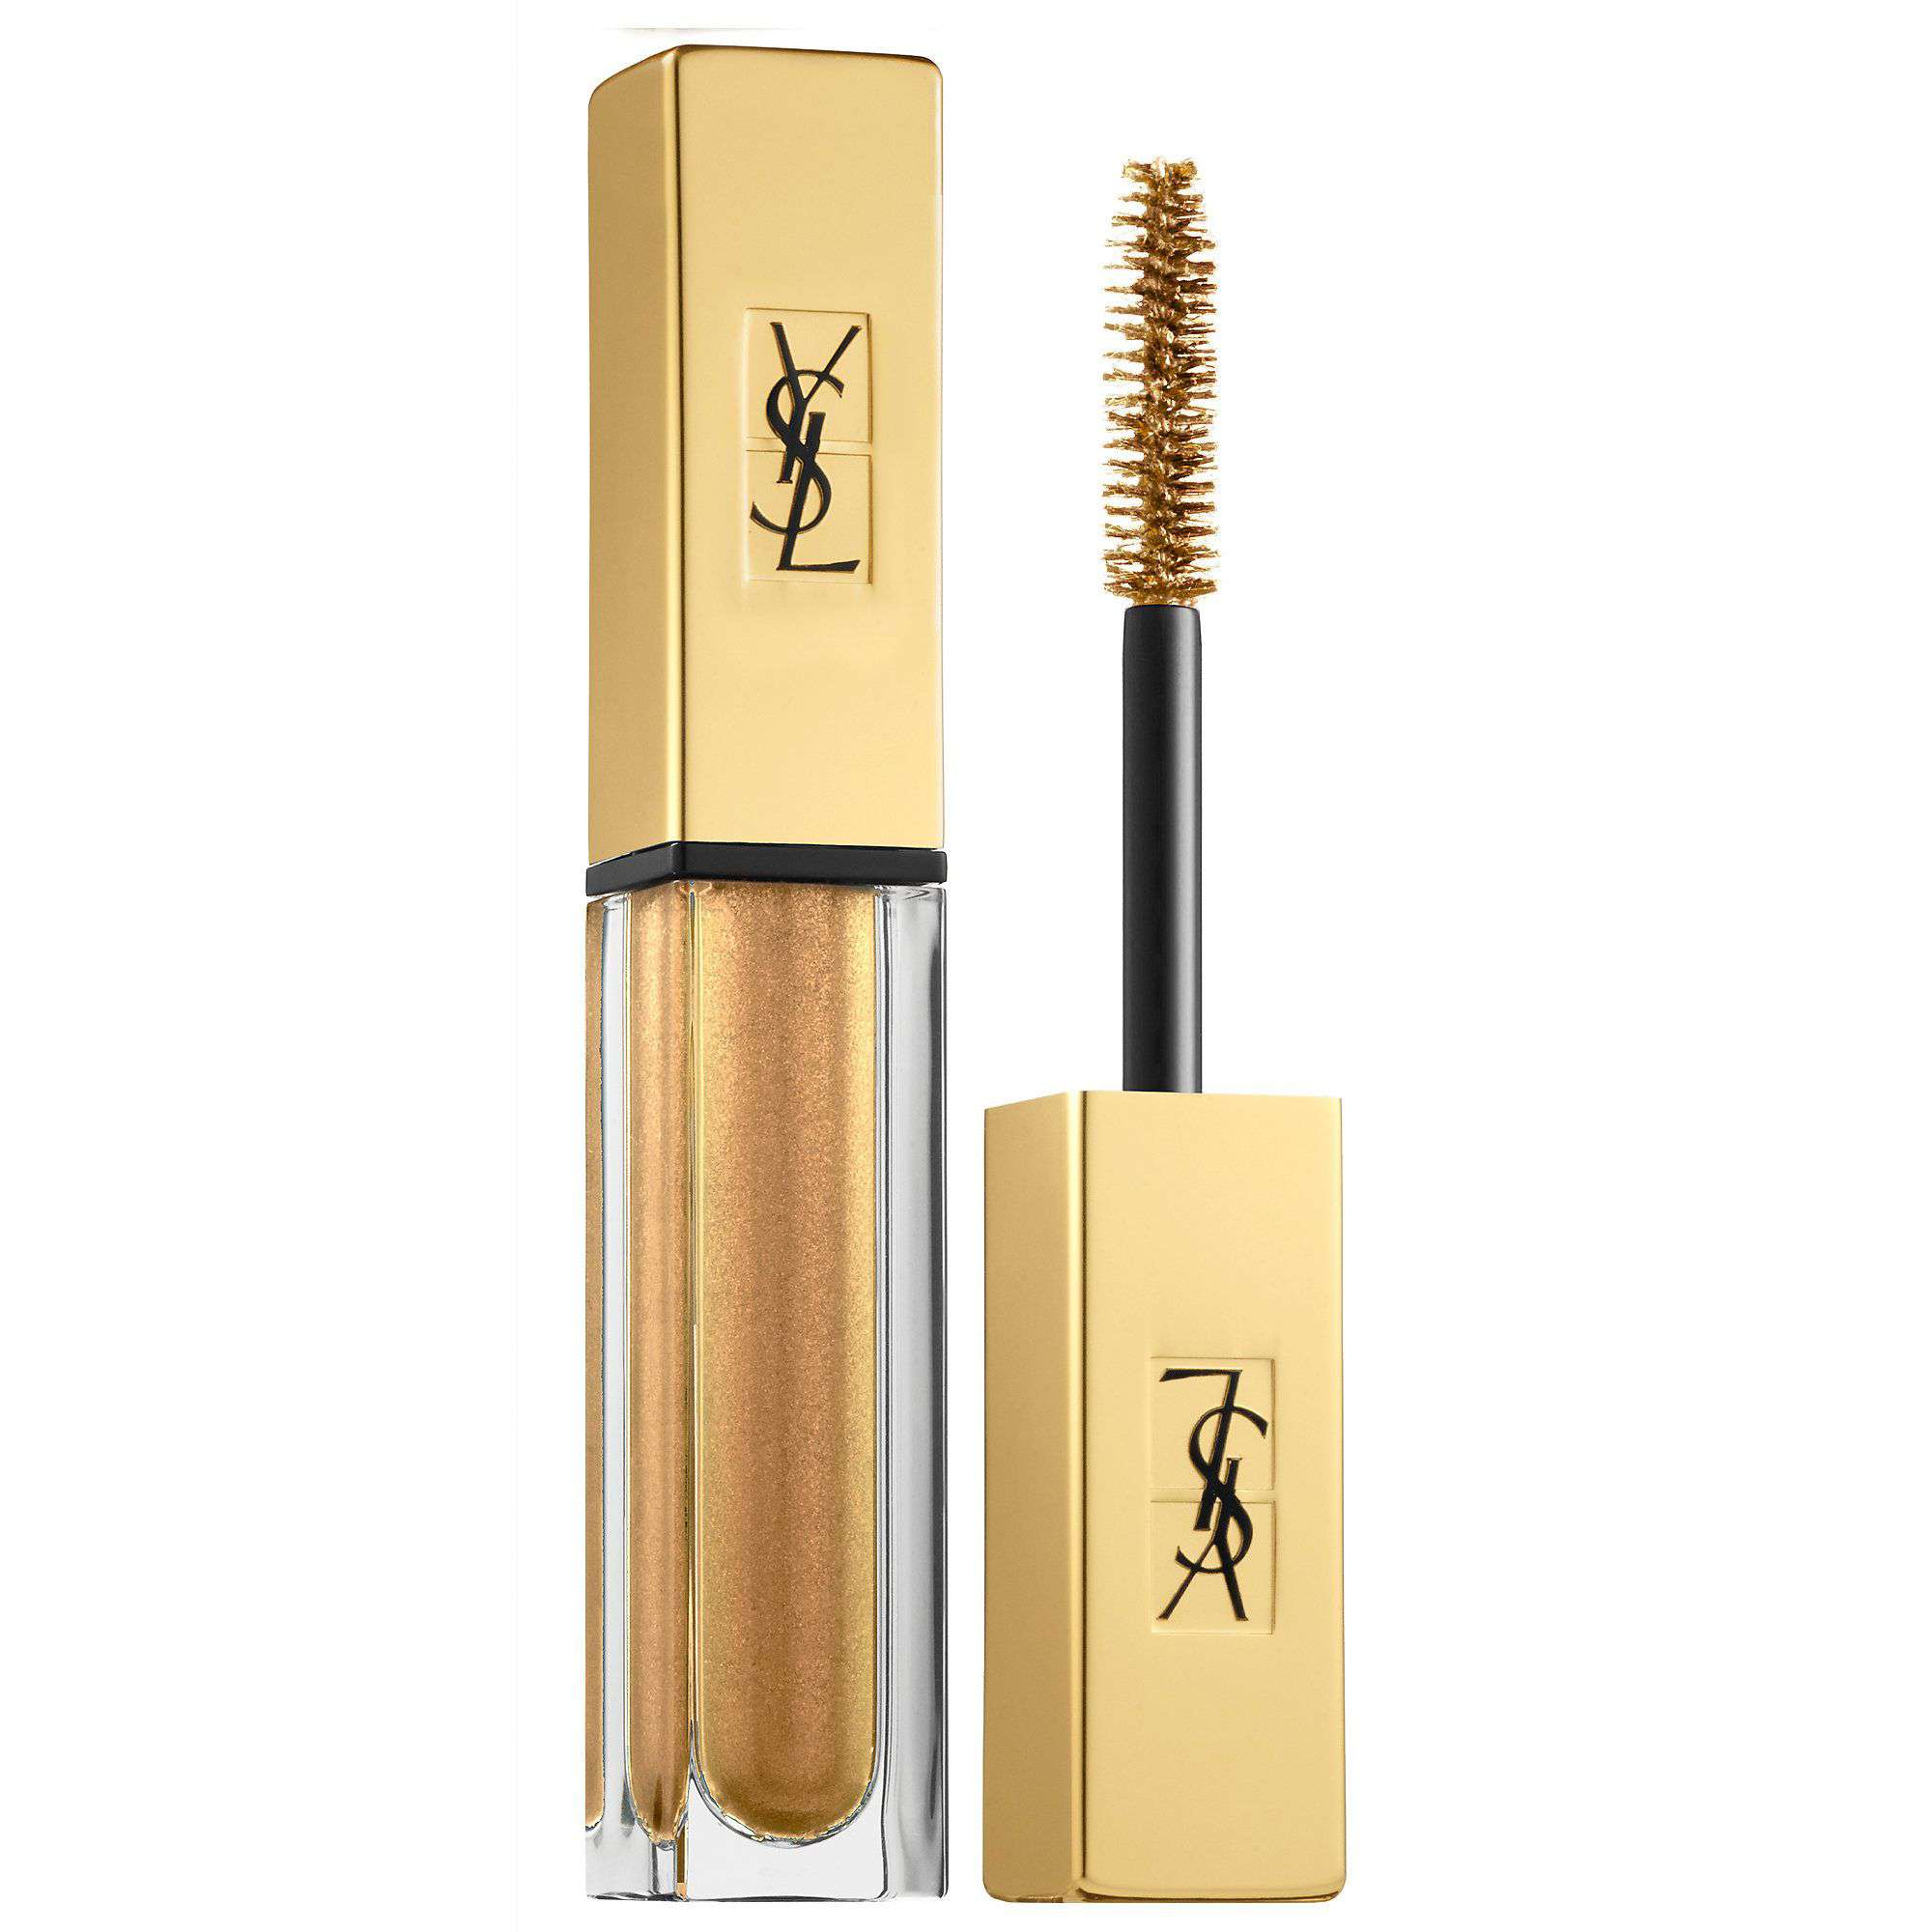 Vinyl Couture Mascara in I'm The Fire